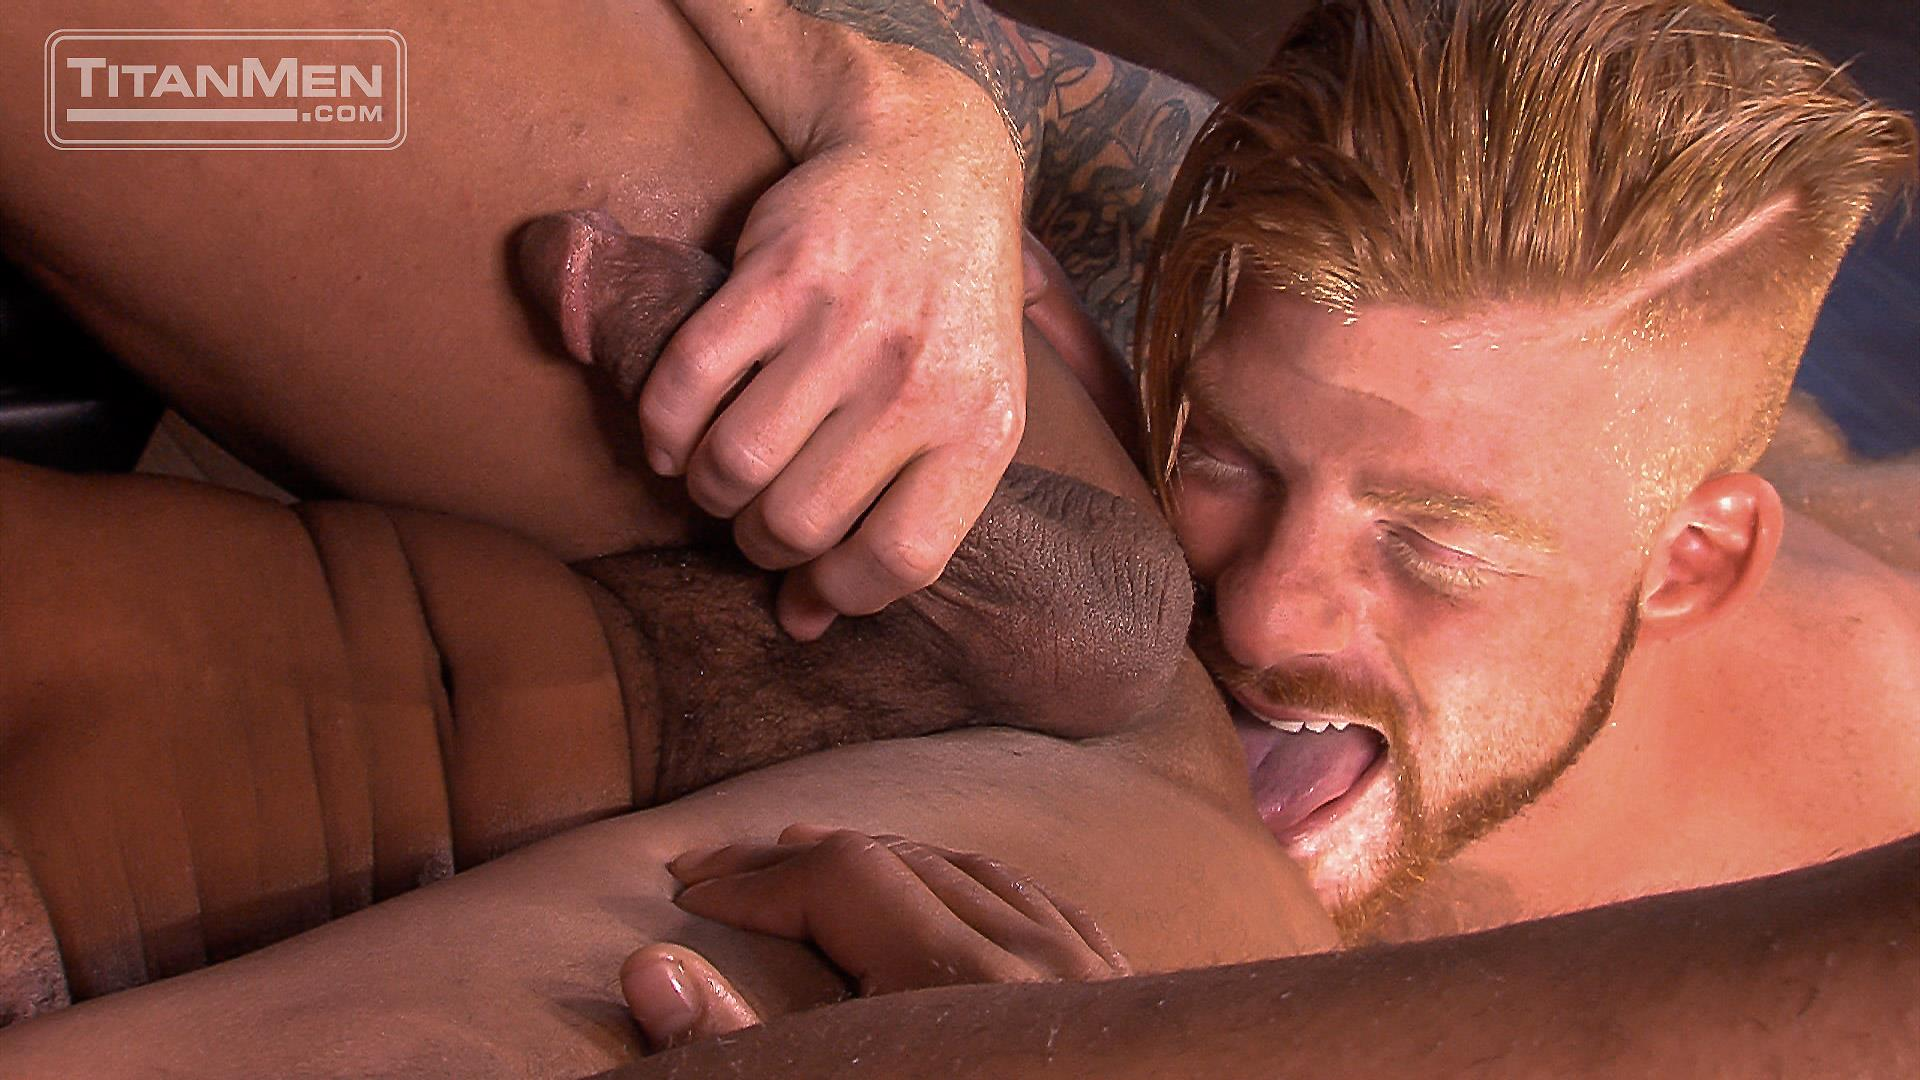 TitanMen-Micah-Brandt-and-Bennett-Anthony-Interracial-Muscle-Hunks-Flip-Fucking-Amateur-Gay-Porn-33 Micah Brandt and Bennett Anthony Flip-Fucking With Their Big Dicks